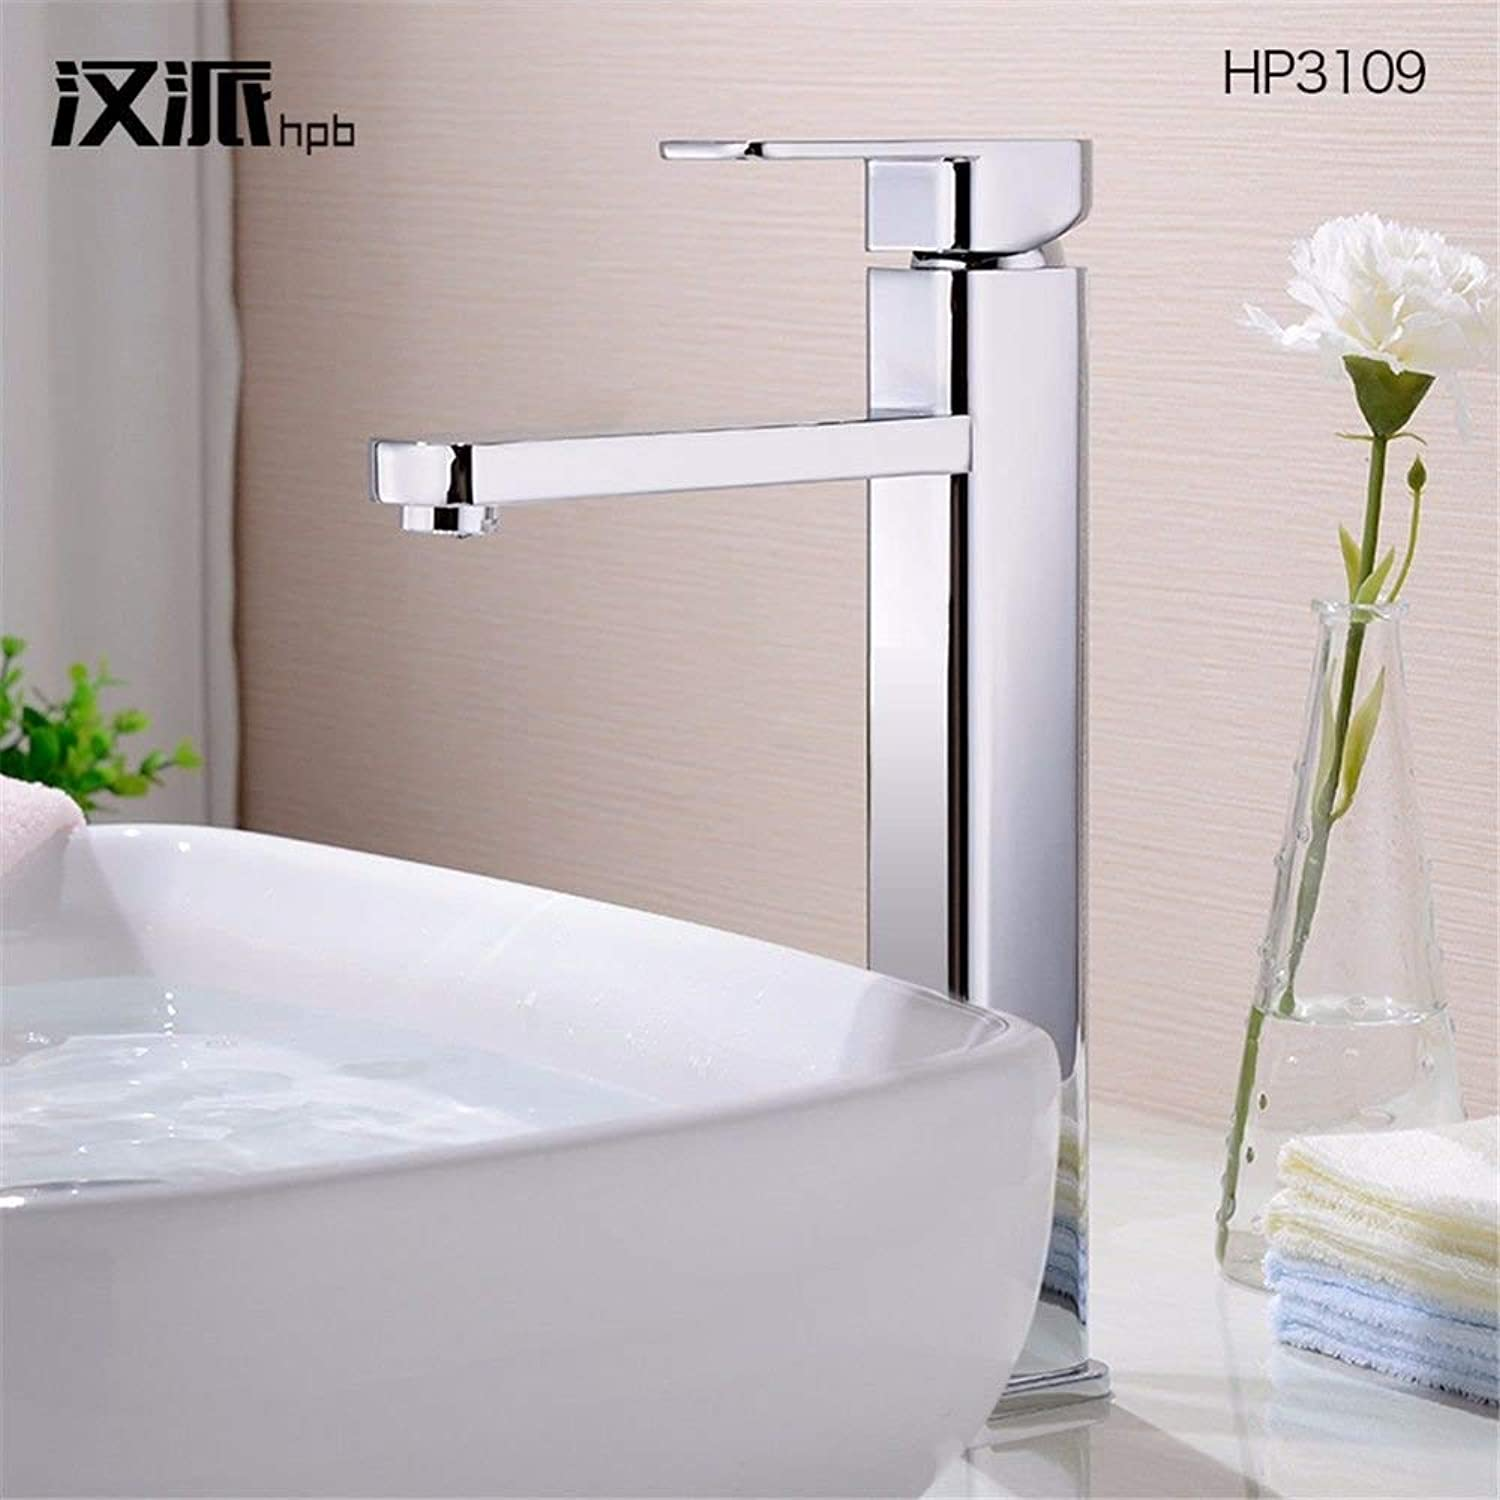 HUAIX home Sink Mixer Tap Bathroom Kitchen Basin Tap Leakproof Save Water Copper Cold And Hot Tub